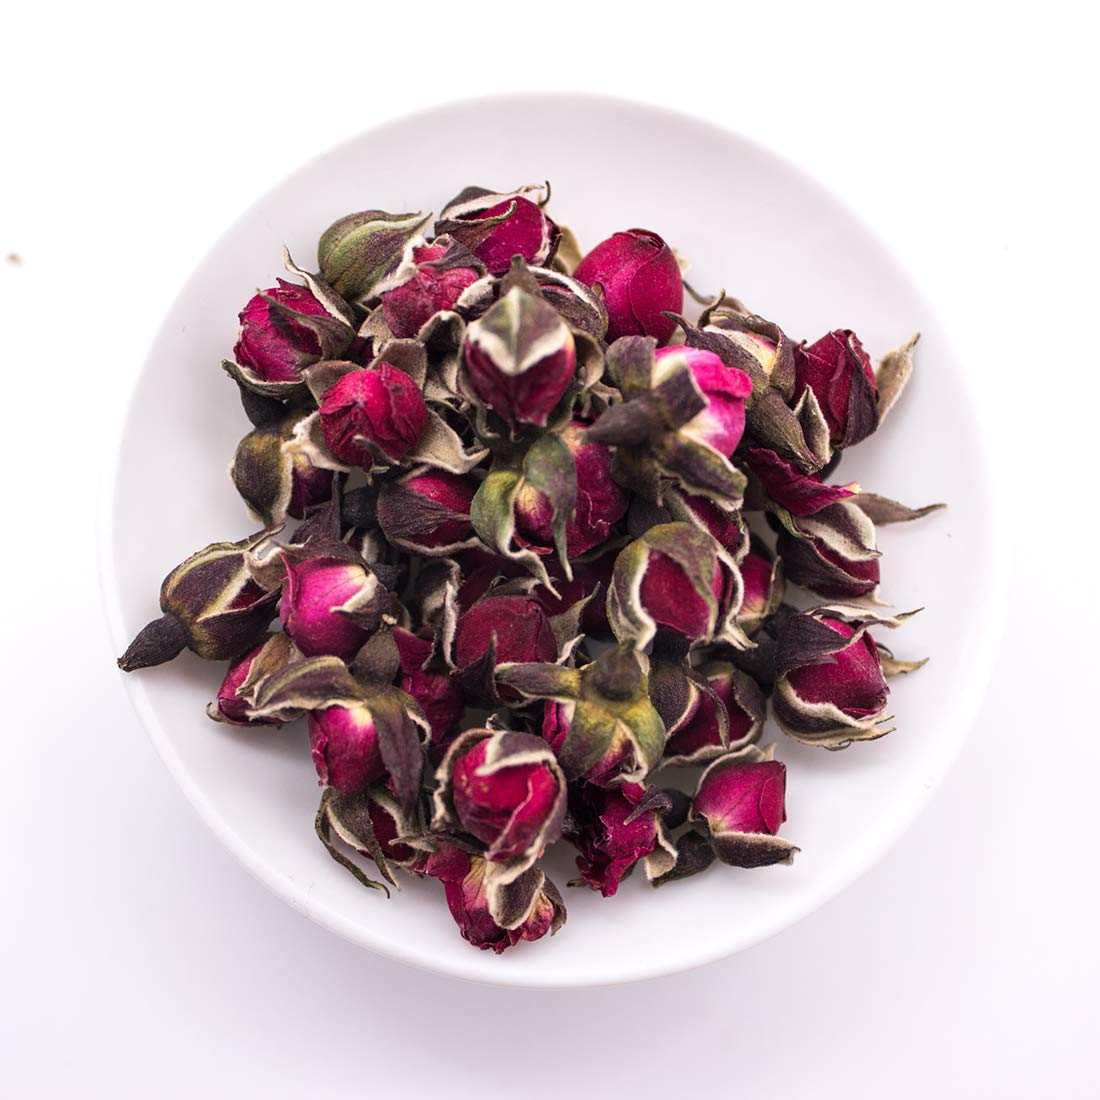 MQUPIN Organic Dried Red Rose Petal Flower Edible Buds Detox Tea 90g/3.2OZ